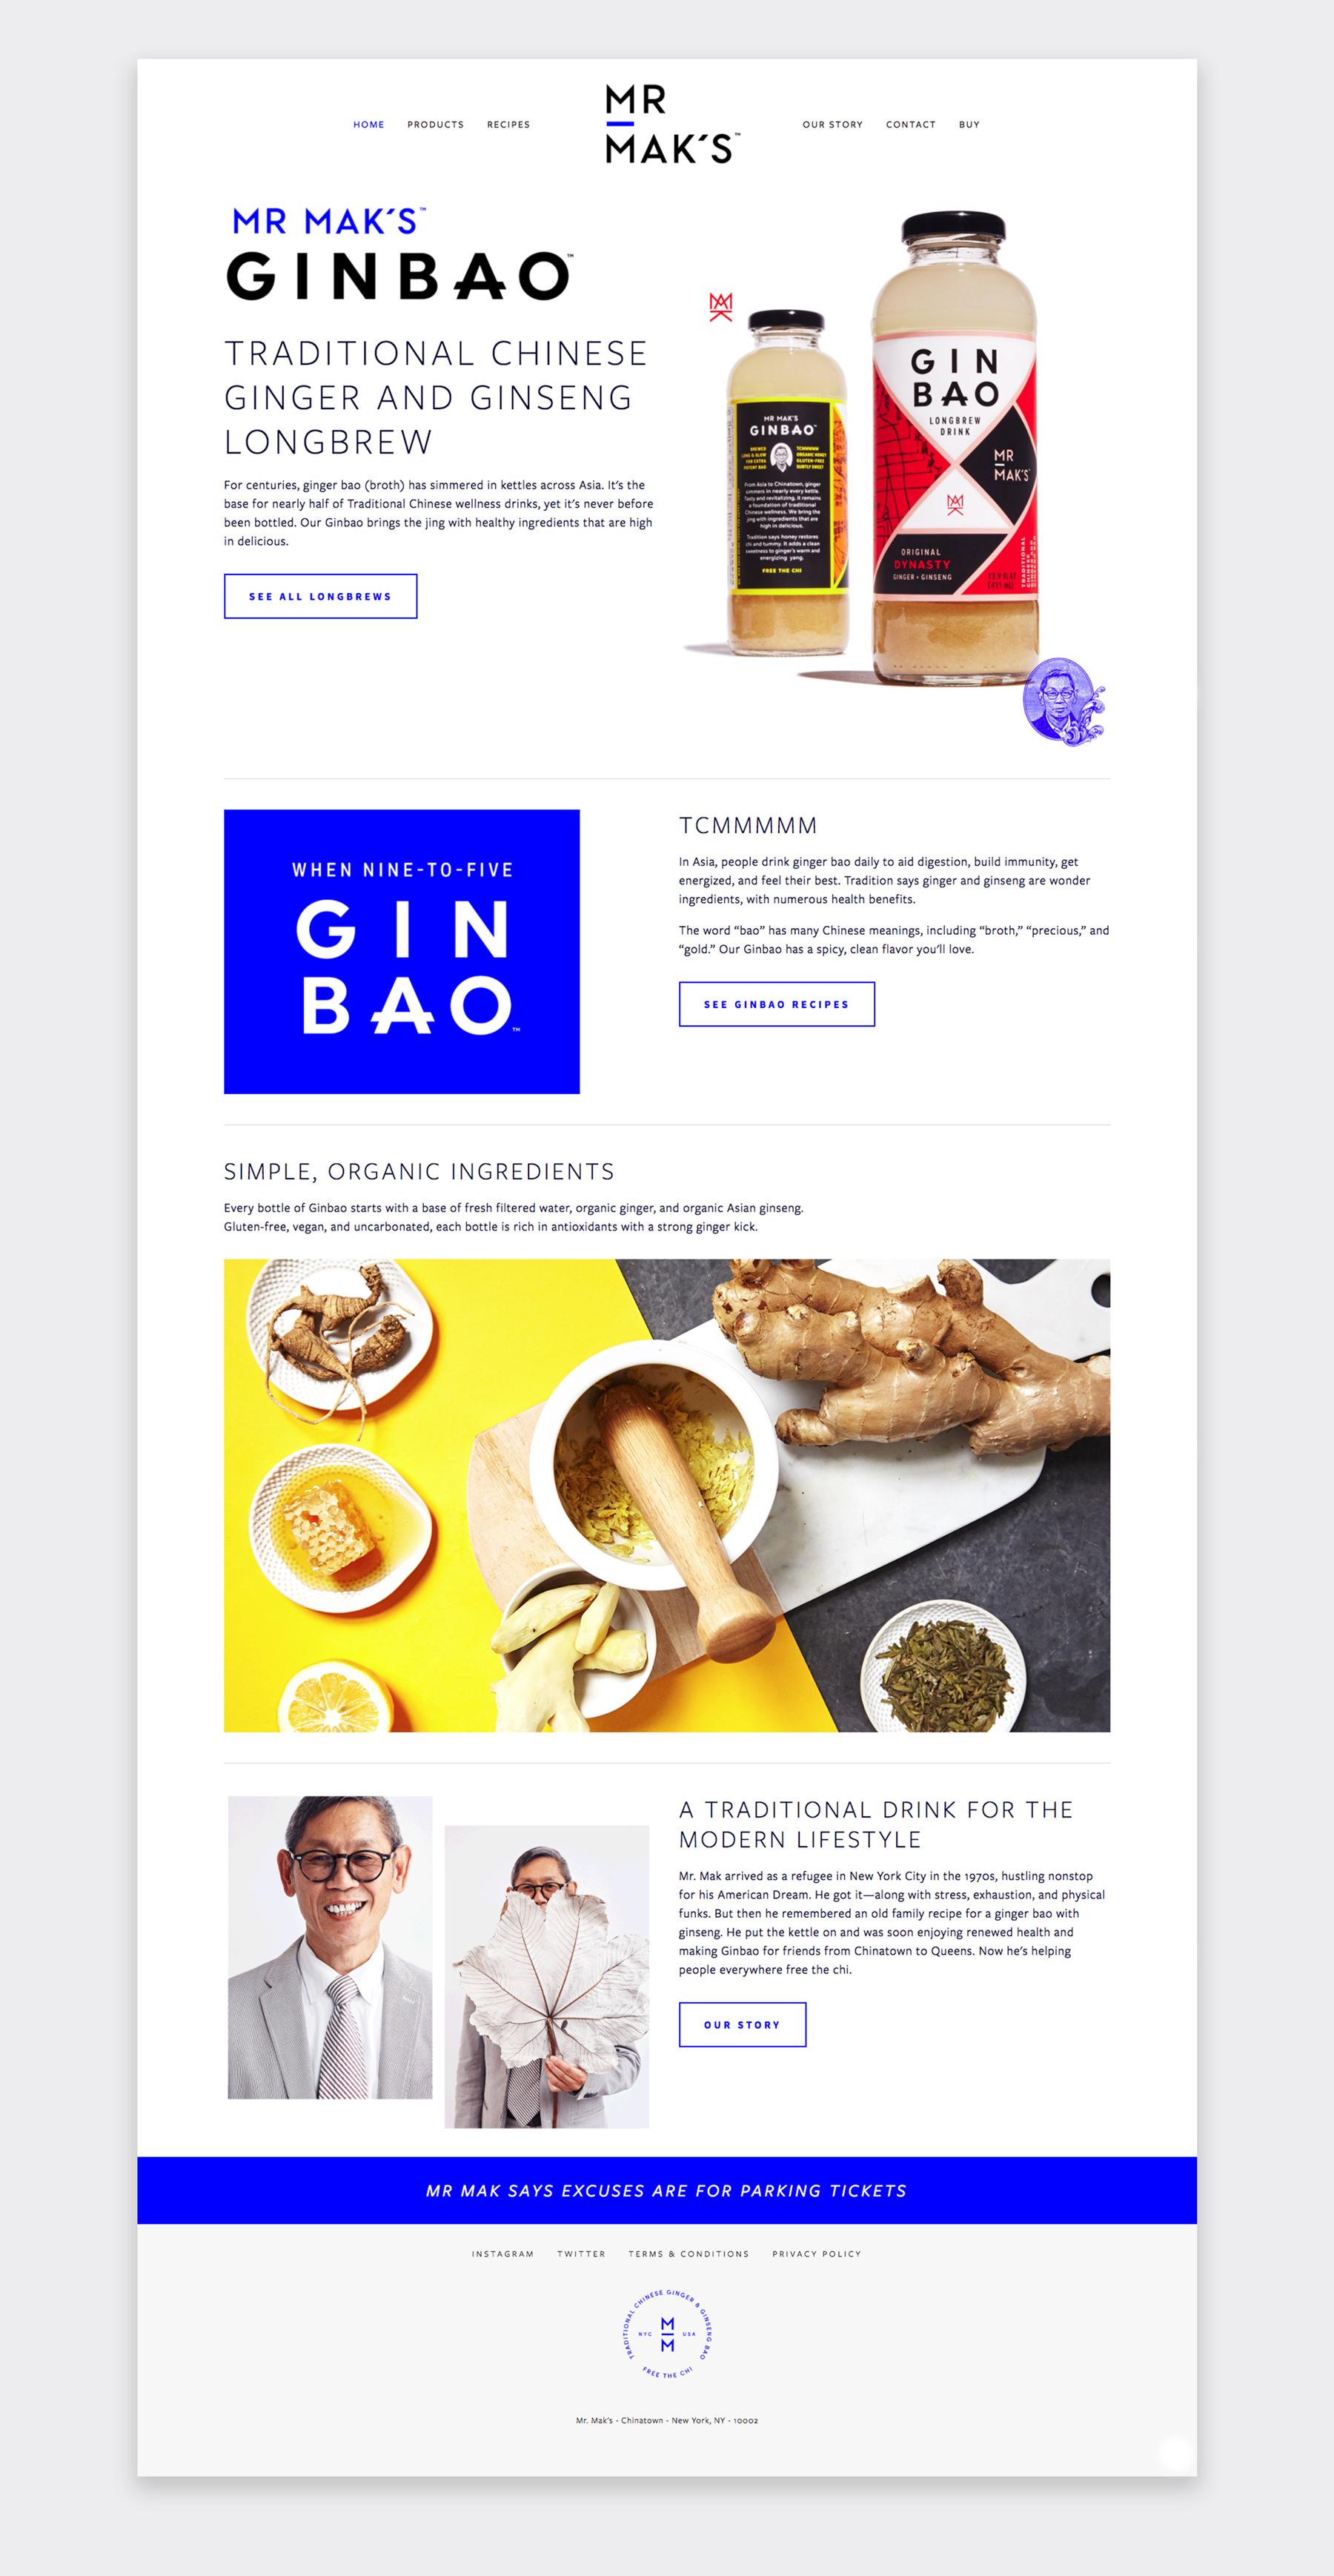 Website for Mr. Mak's Ginbao, designed by Abby Haddican.